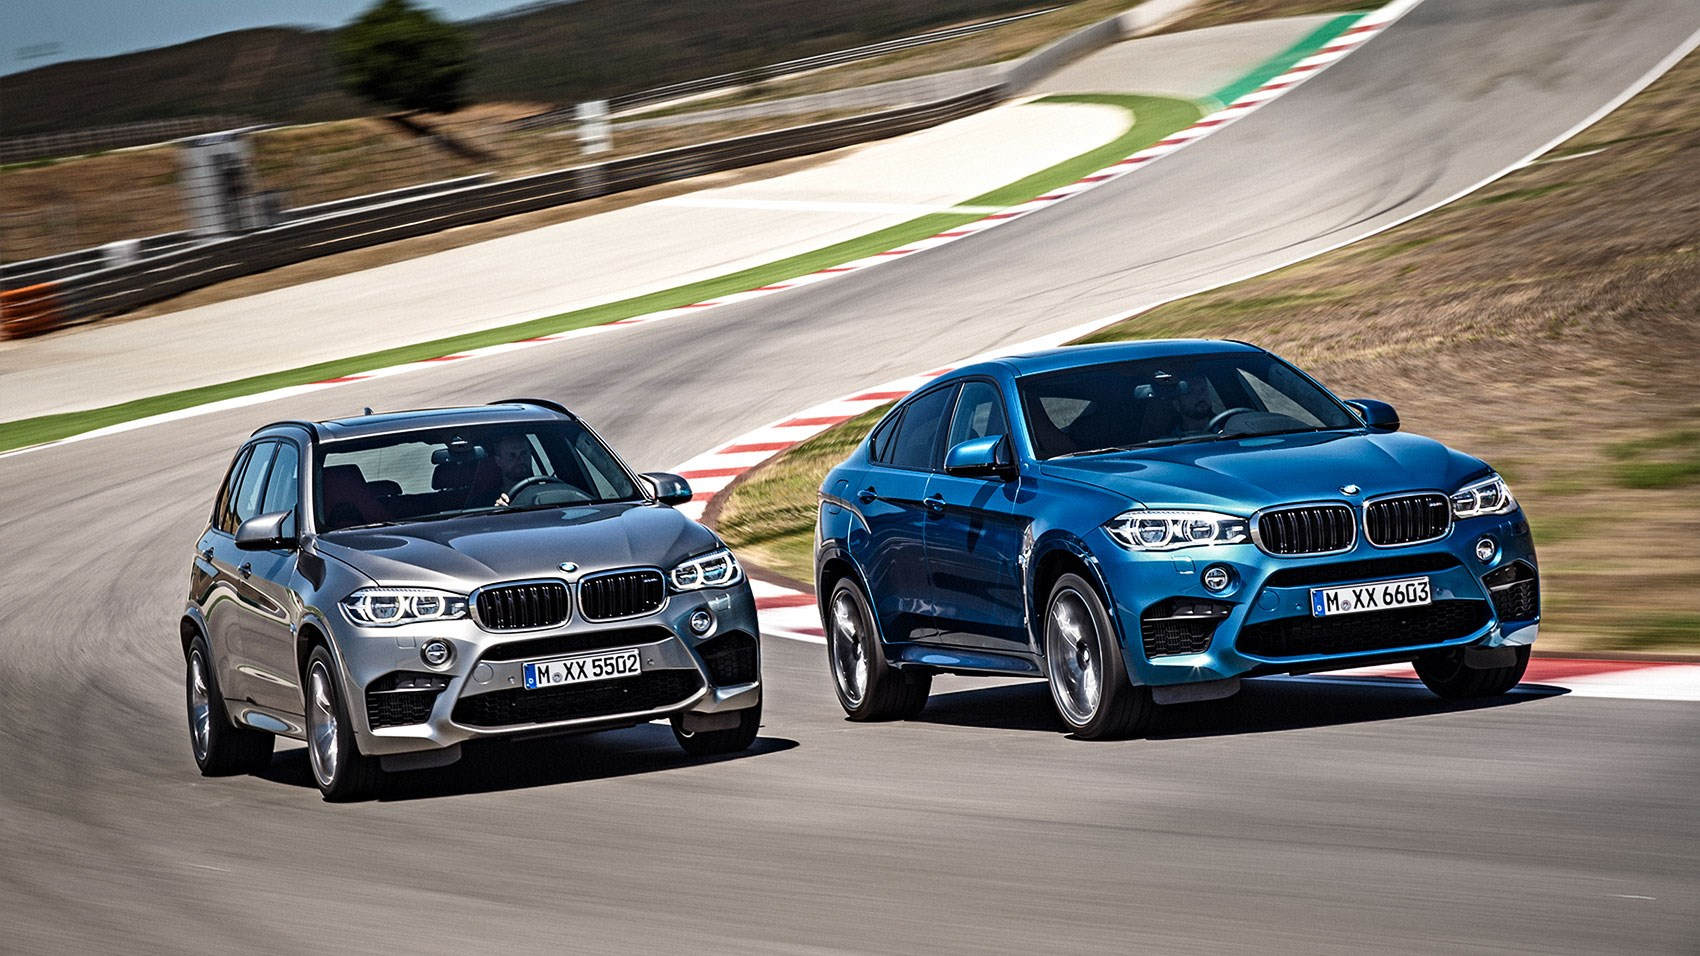 Superb ... Pick Your BMW X Models In Two Flavours: X5 (left) Or X6 (right) ...